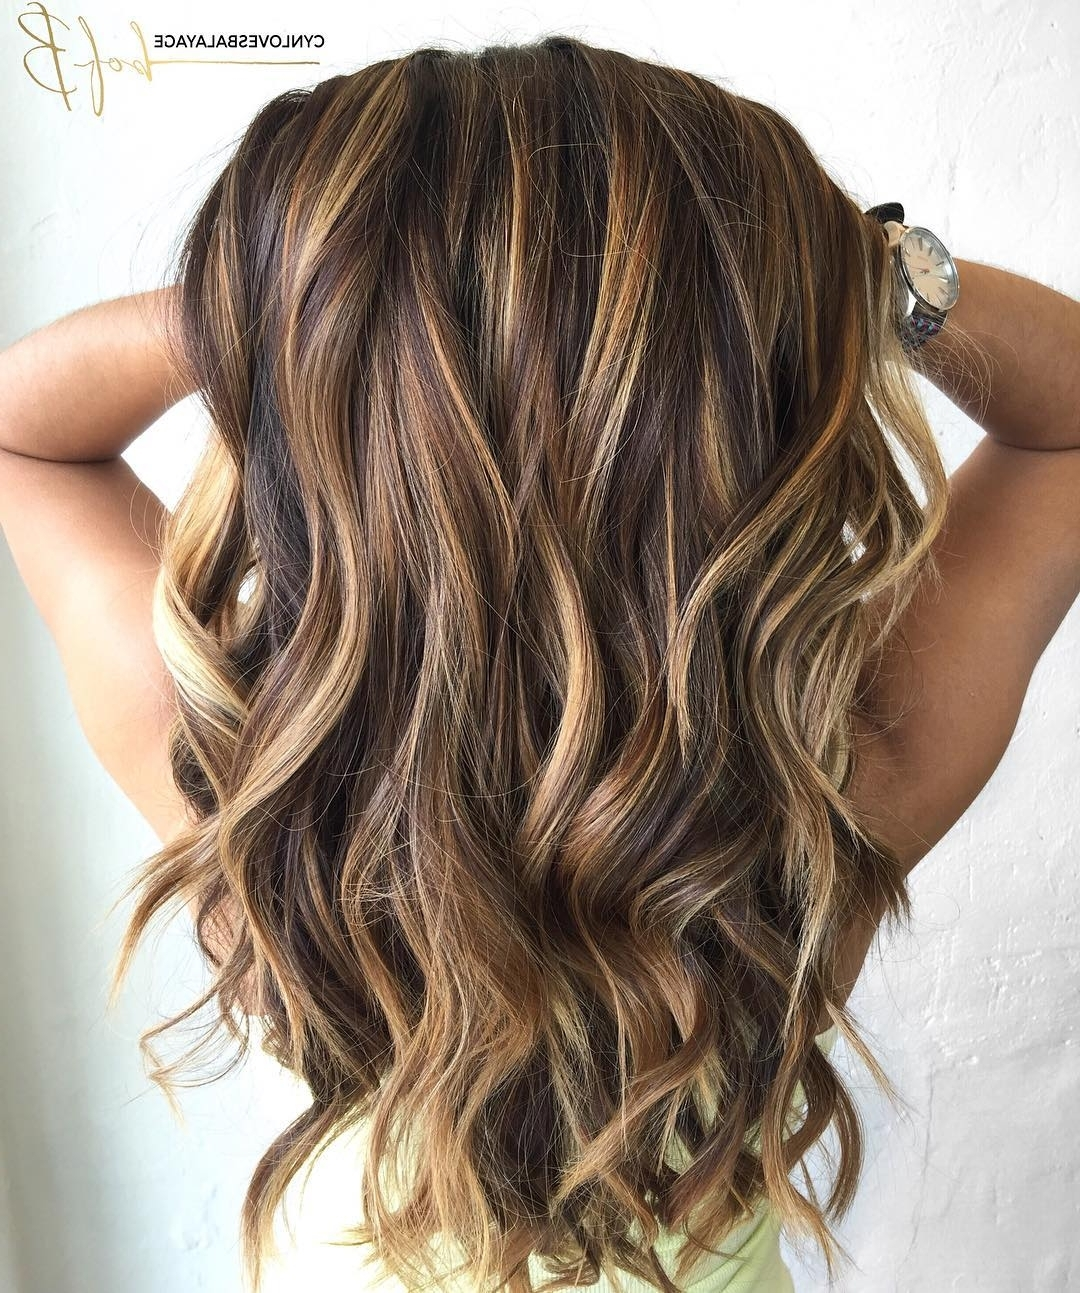 60 Looks With Caramel Highlights On Brown And Dark Brown Hair Regarding Well Liked Maple Bronde Hairstyles With Highlights (View 6 of 20)